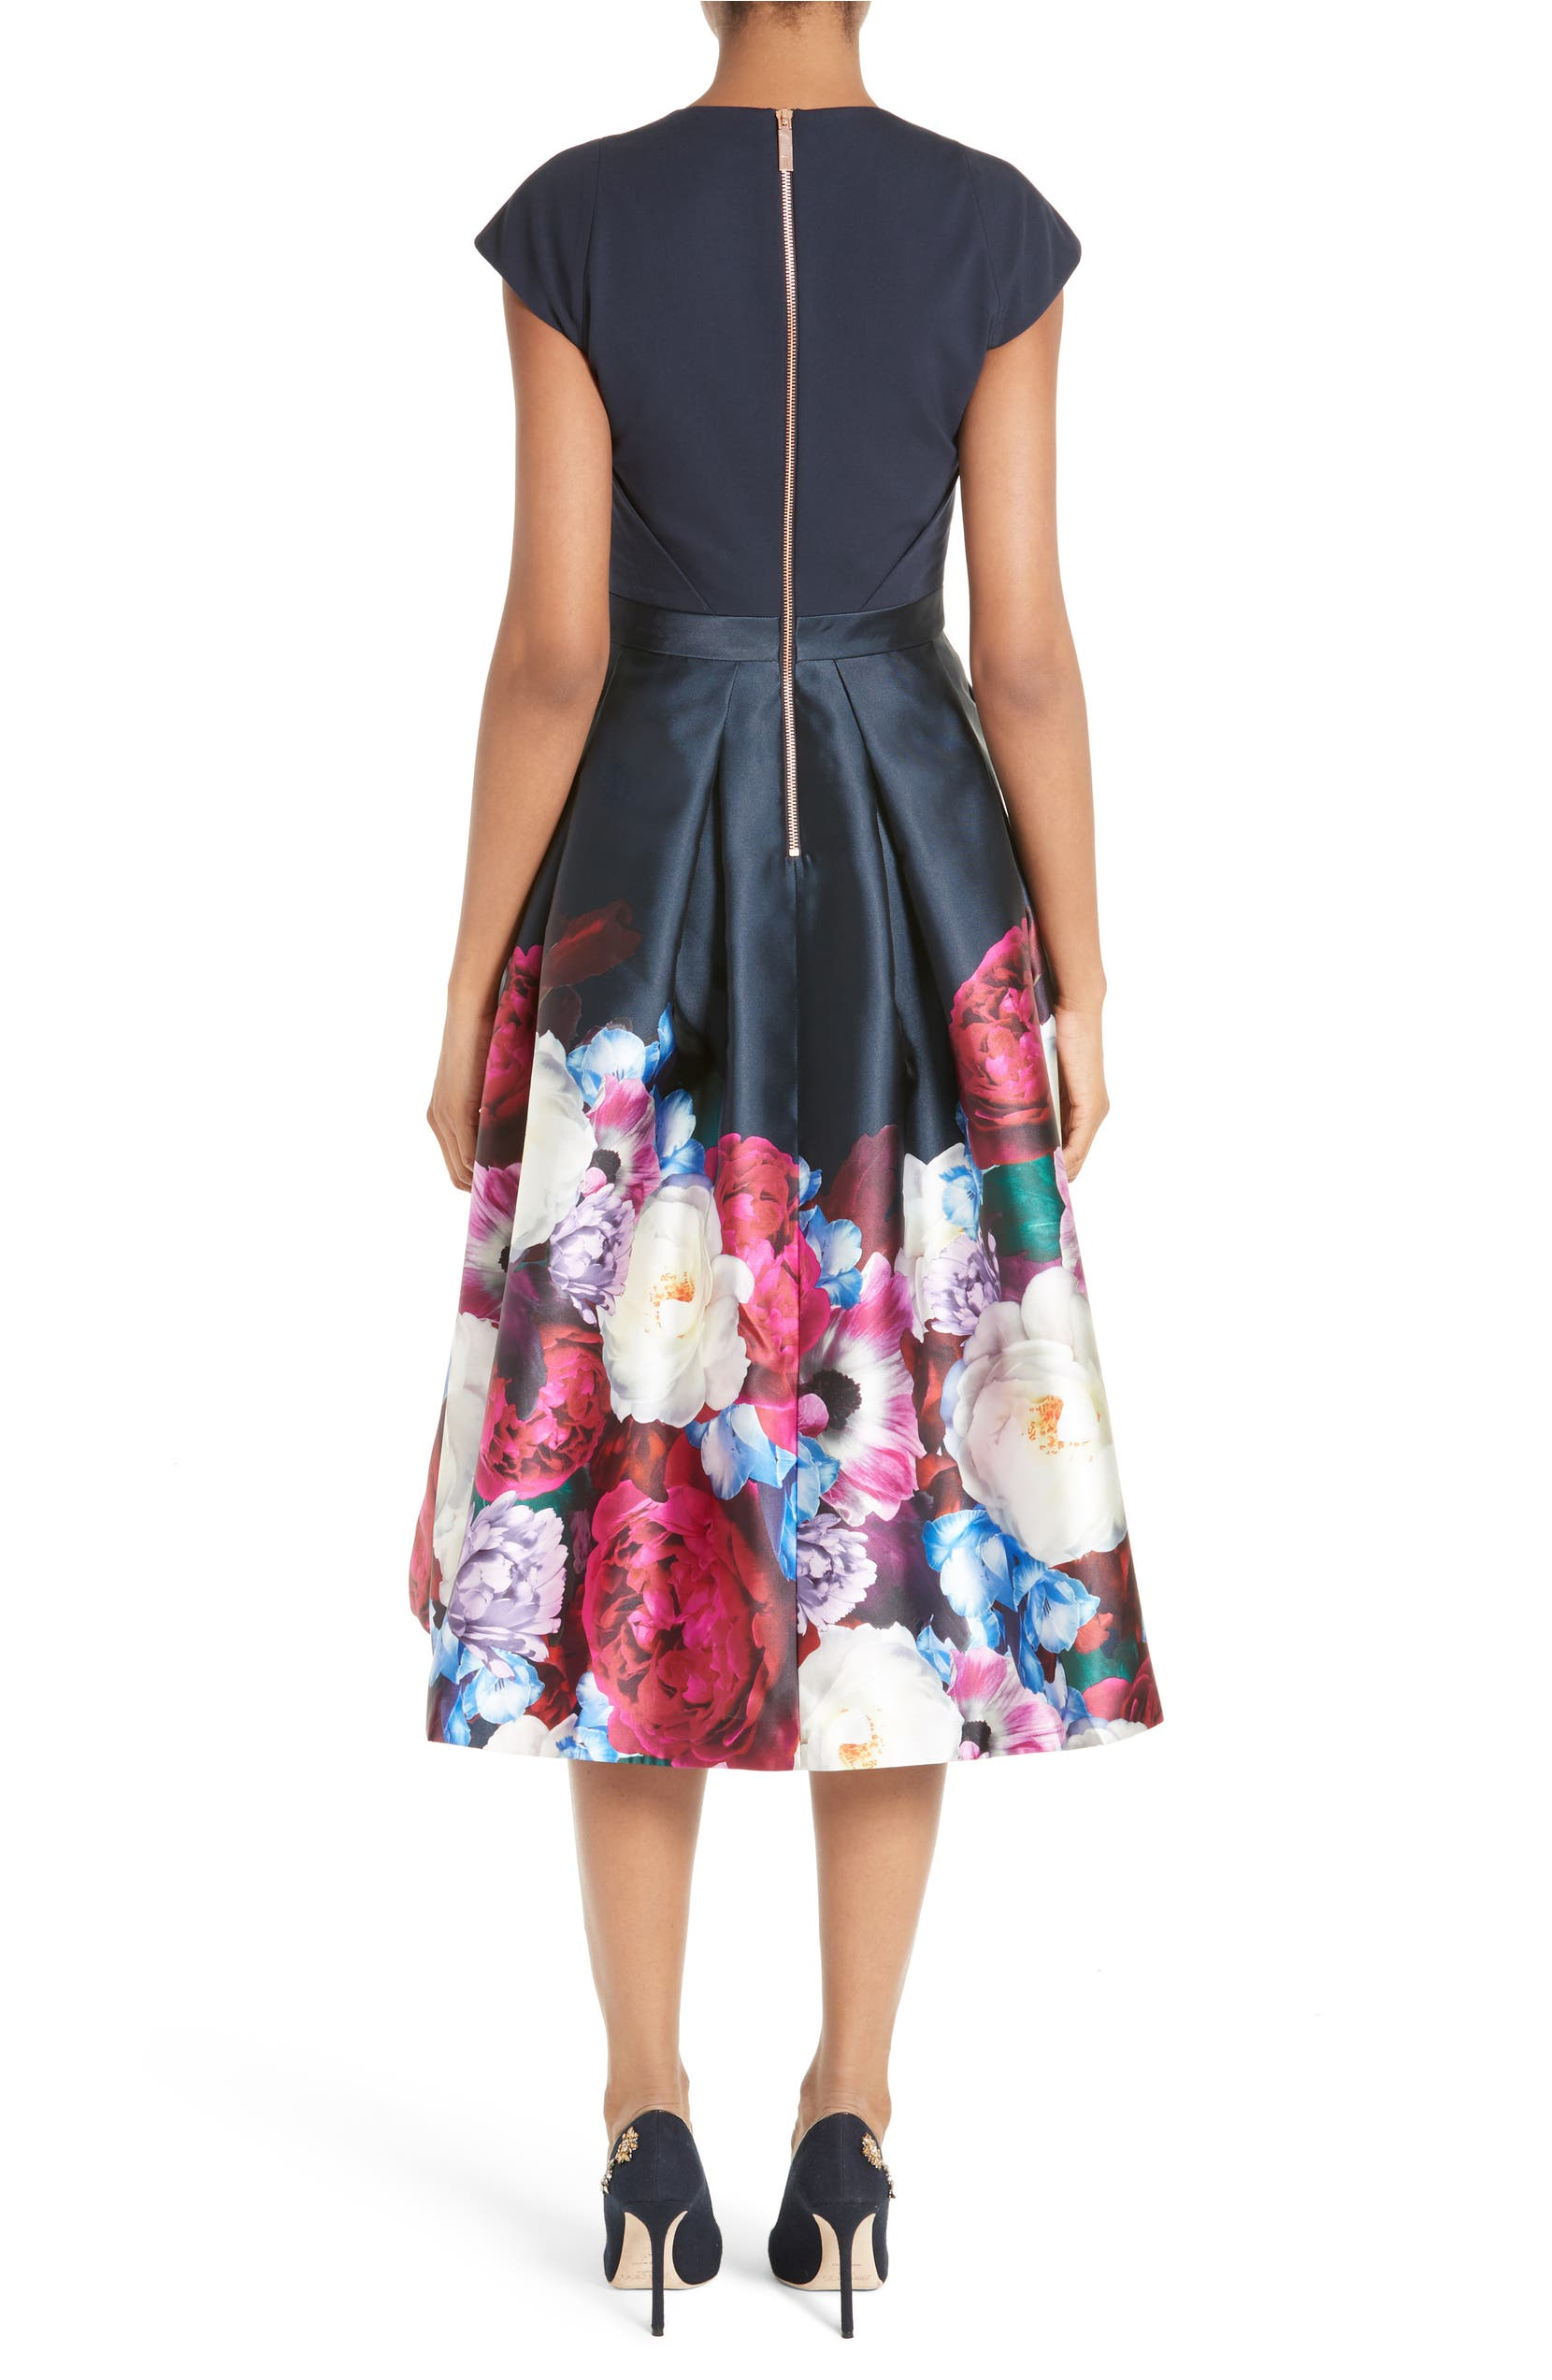 82ad4b194 Ted Baker London Blushing Bouquet Fit & Flare Dress | Nordstrom